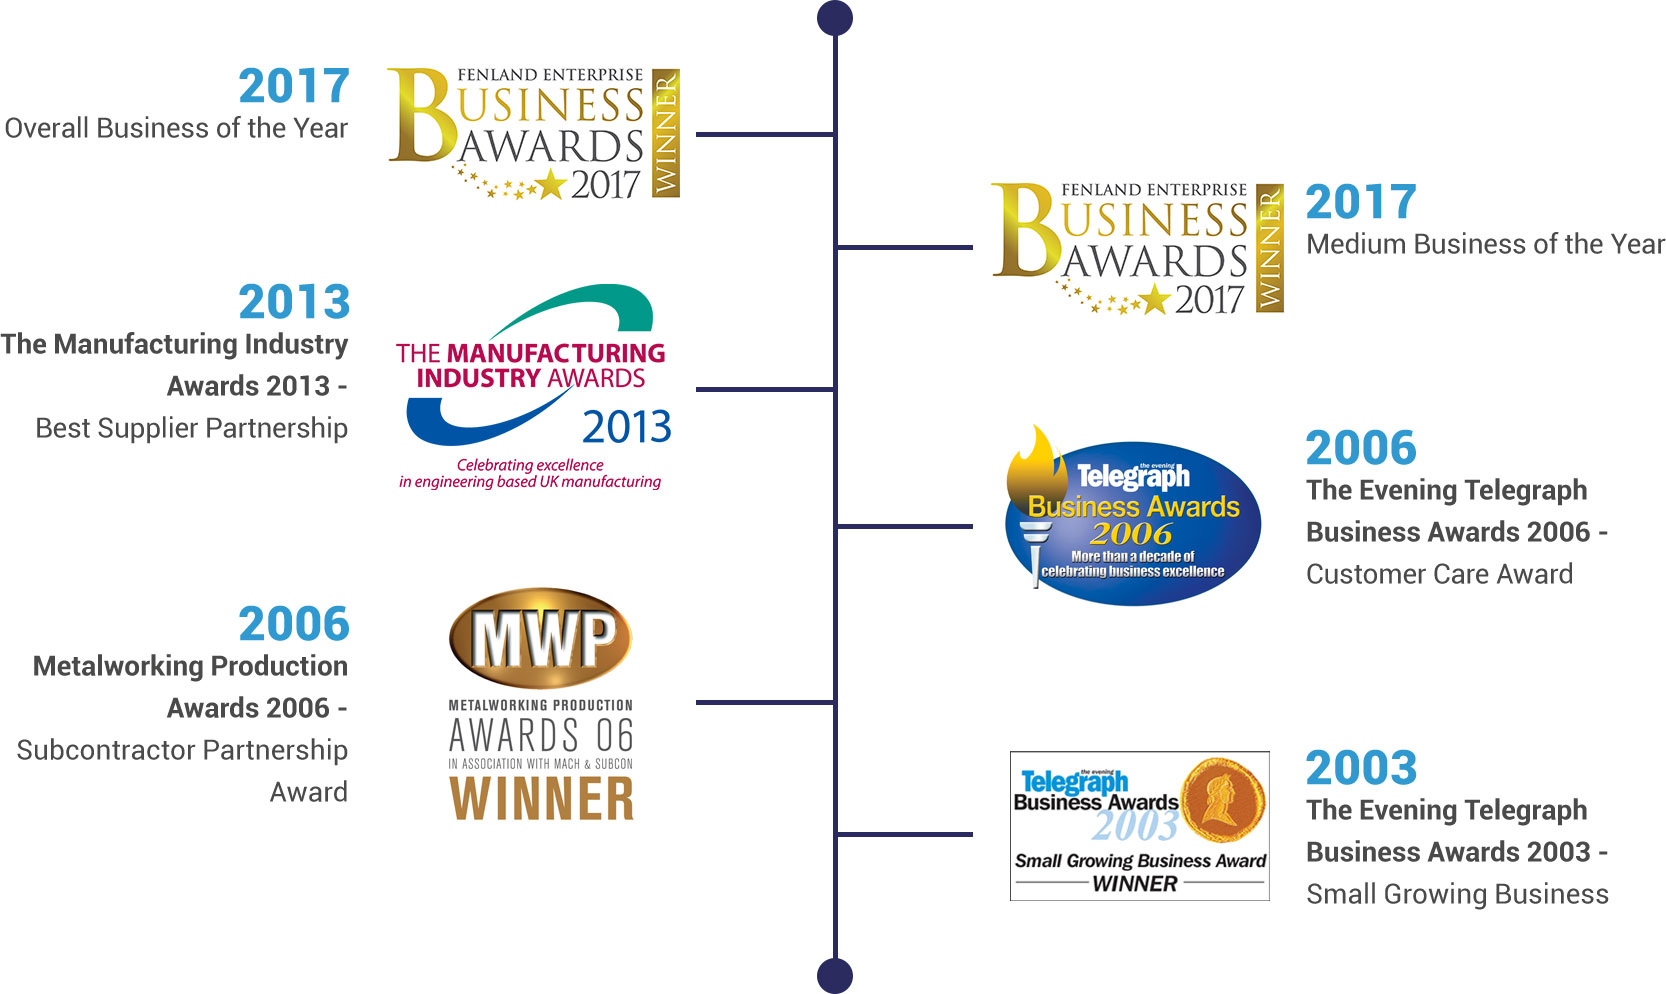 Timeline of PCML's awards including business of the year and best supplier partnership